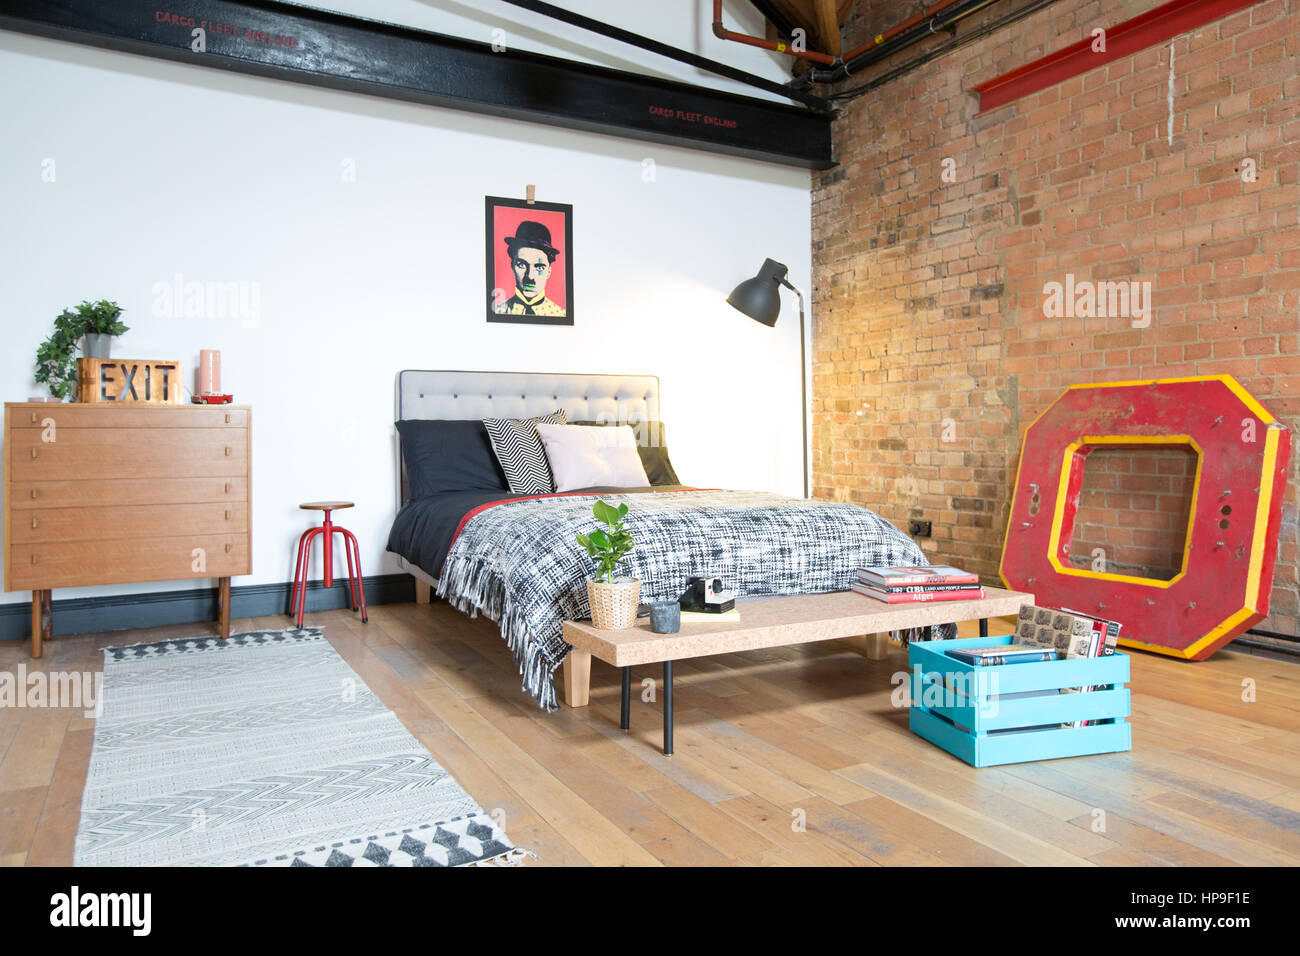 A bedroom in a loft style apartment with exposed brick and ...